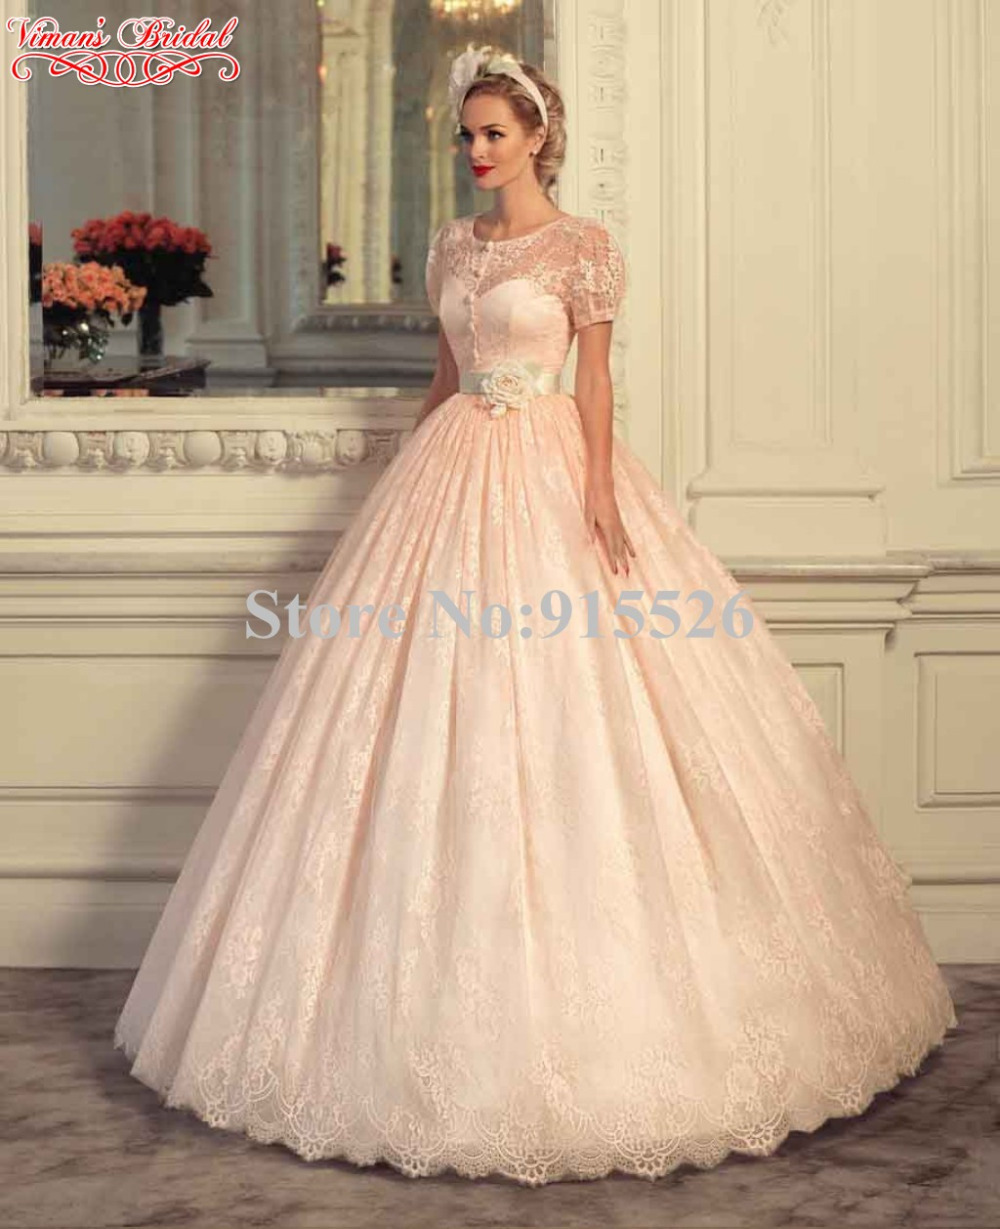 buy 2015 viman 39 s bridal peach colored